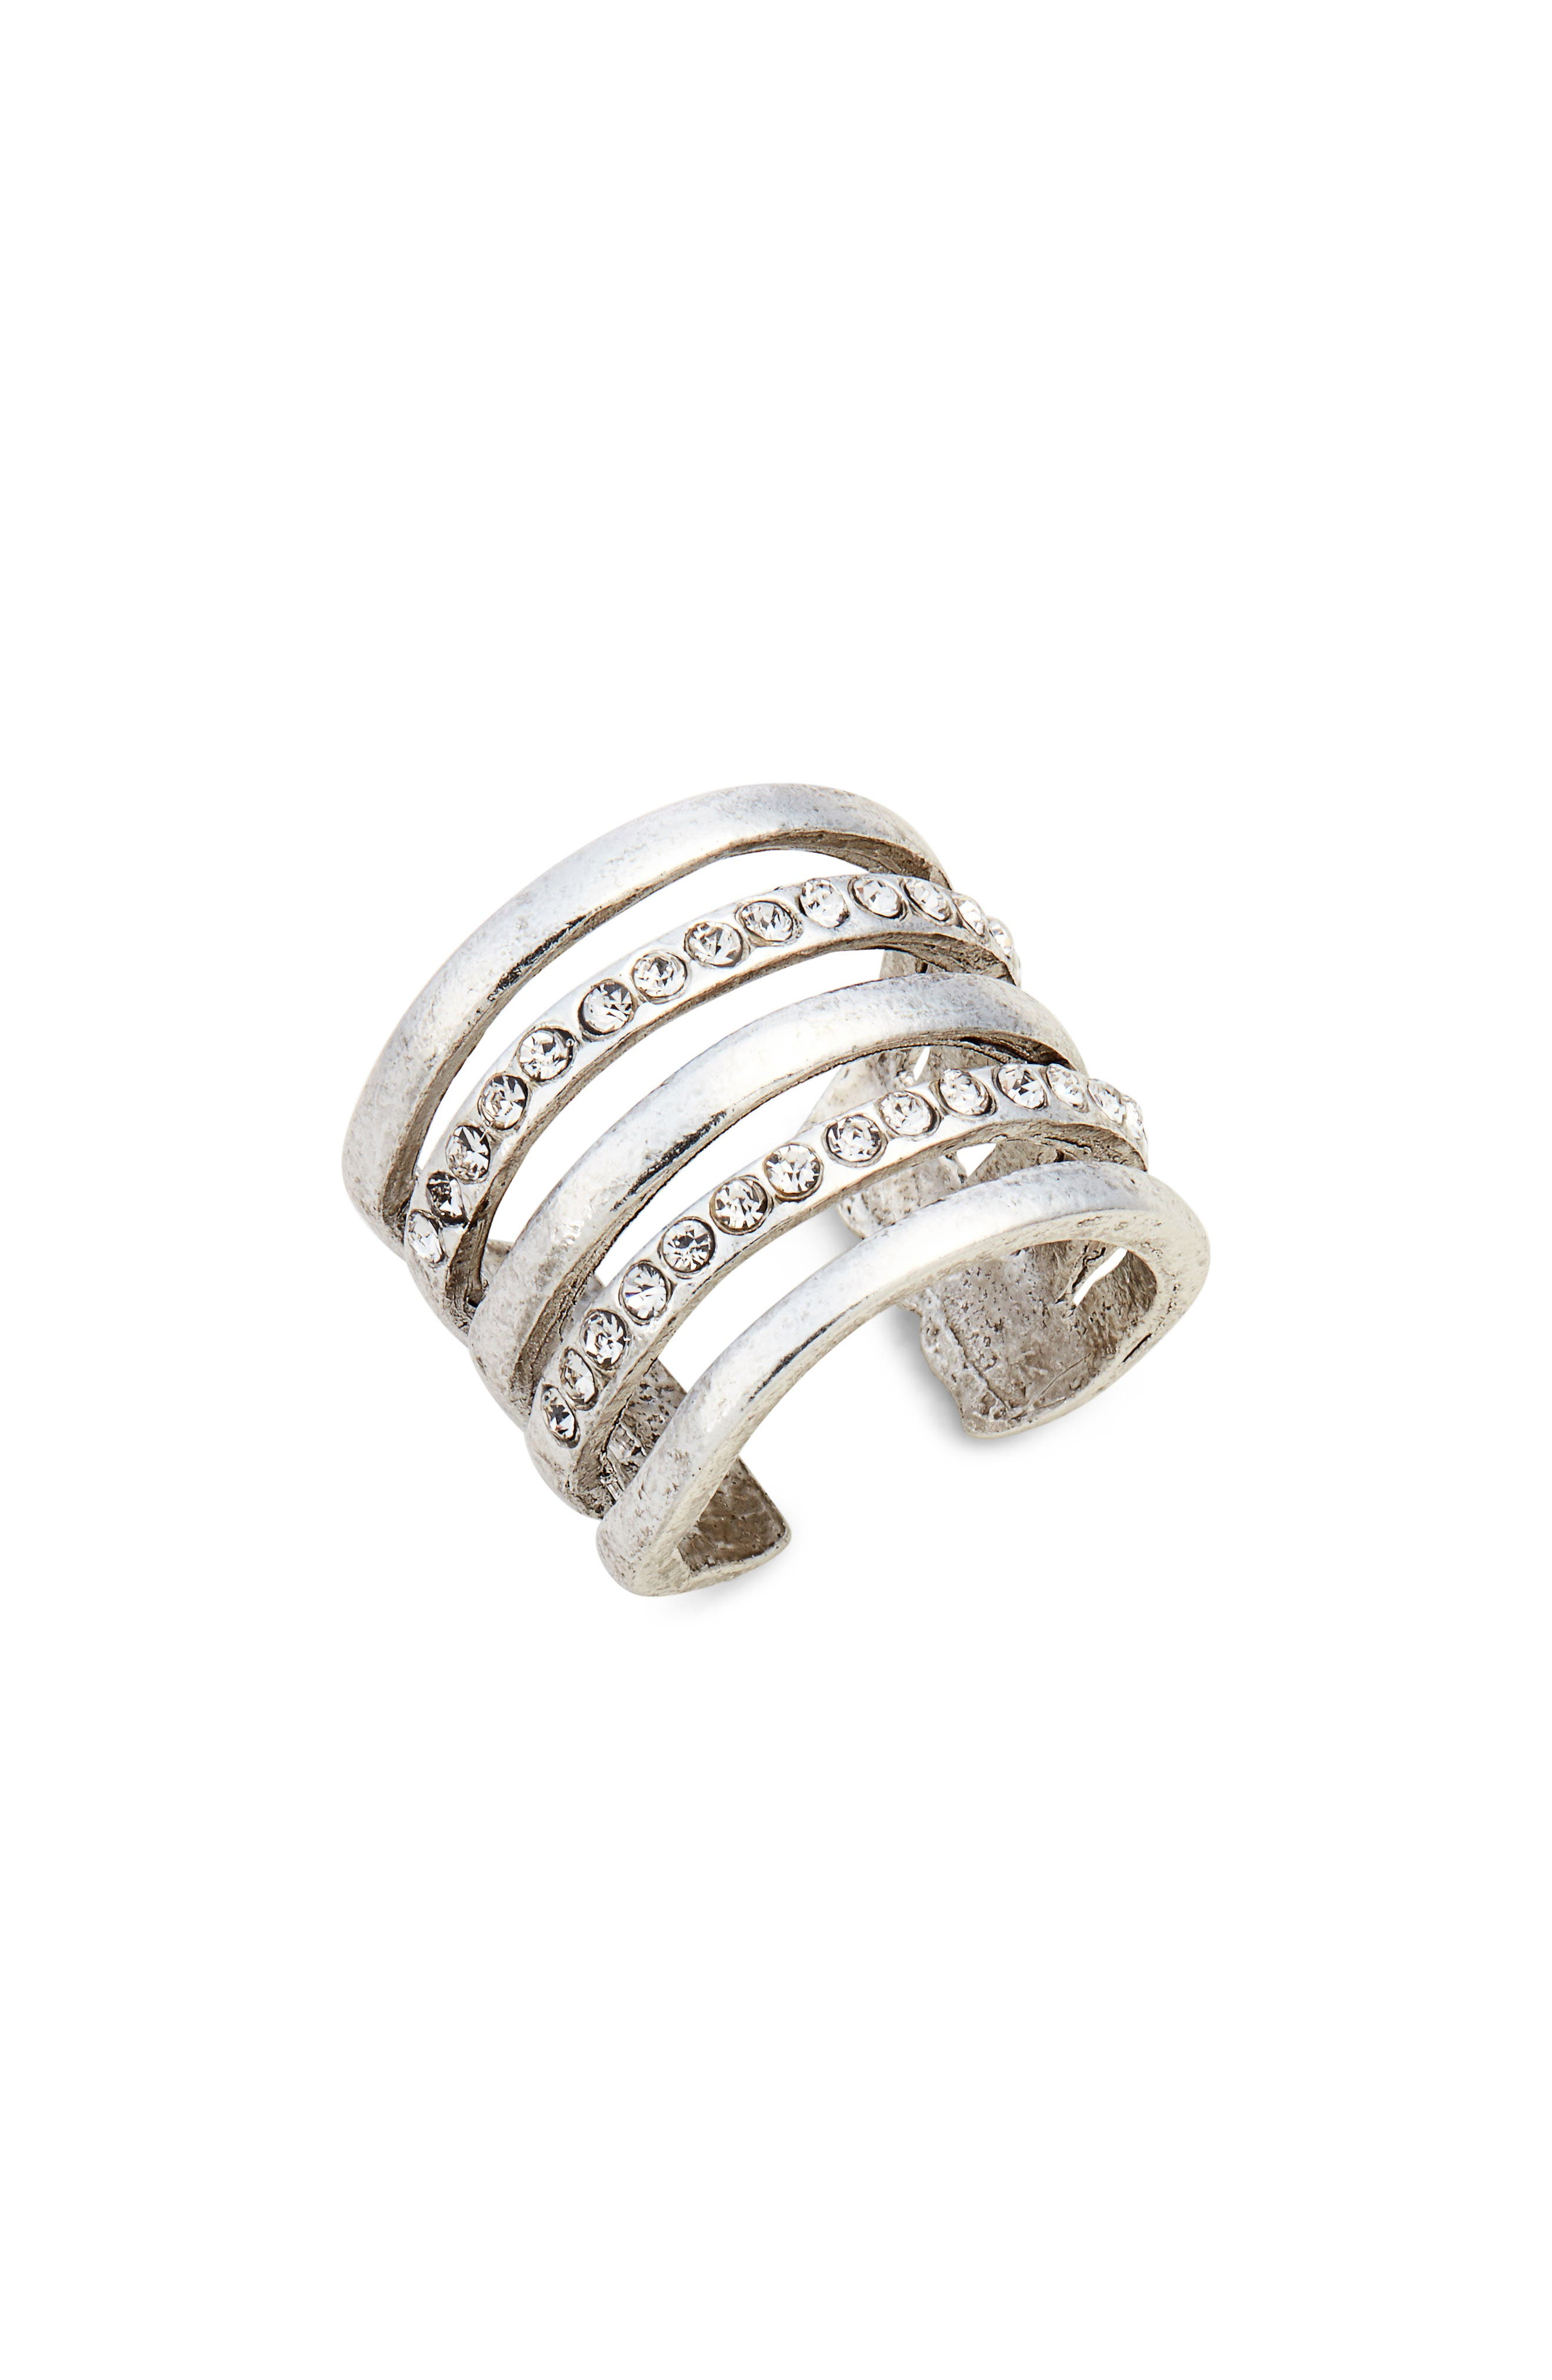 Claire Cage Ring,                             Main thumbnail 1, color,                             SILVER